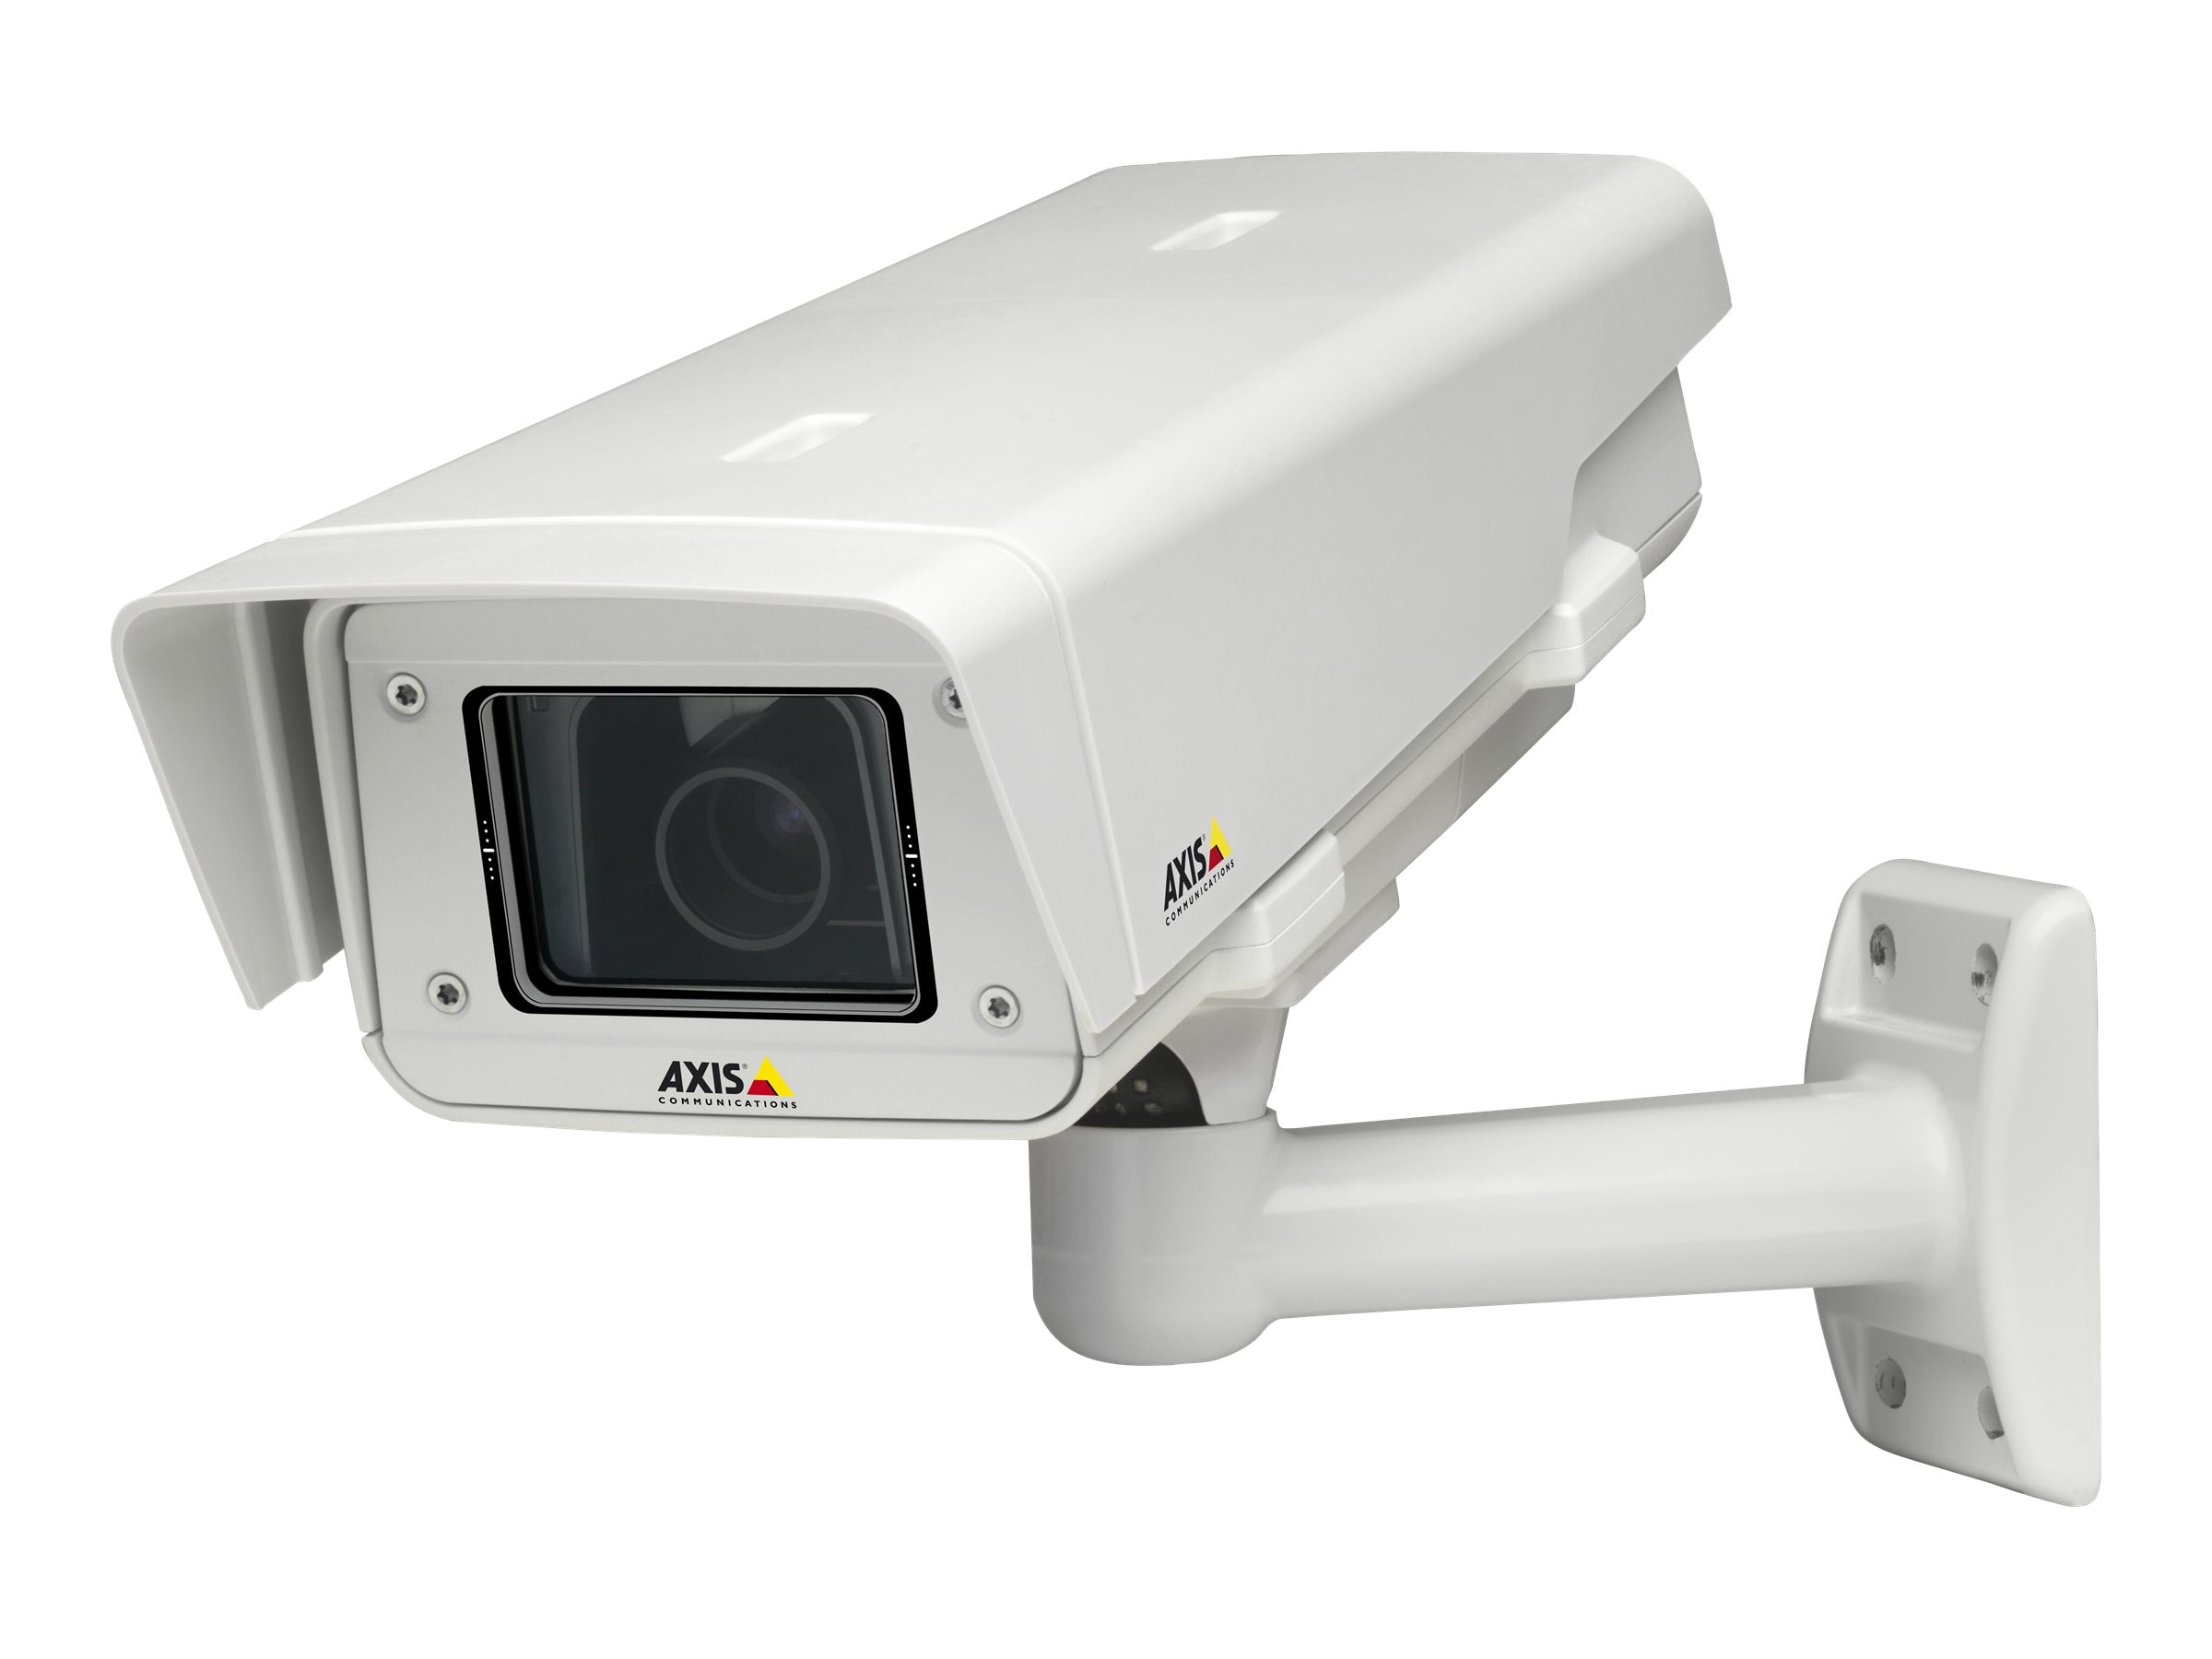 Axis P1357-E 5MPX Outdoor PoE Serial Network Camera, 0530-001, 15593312, Cameras - Security